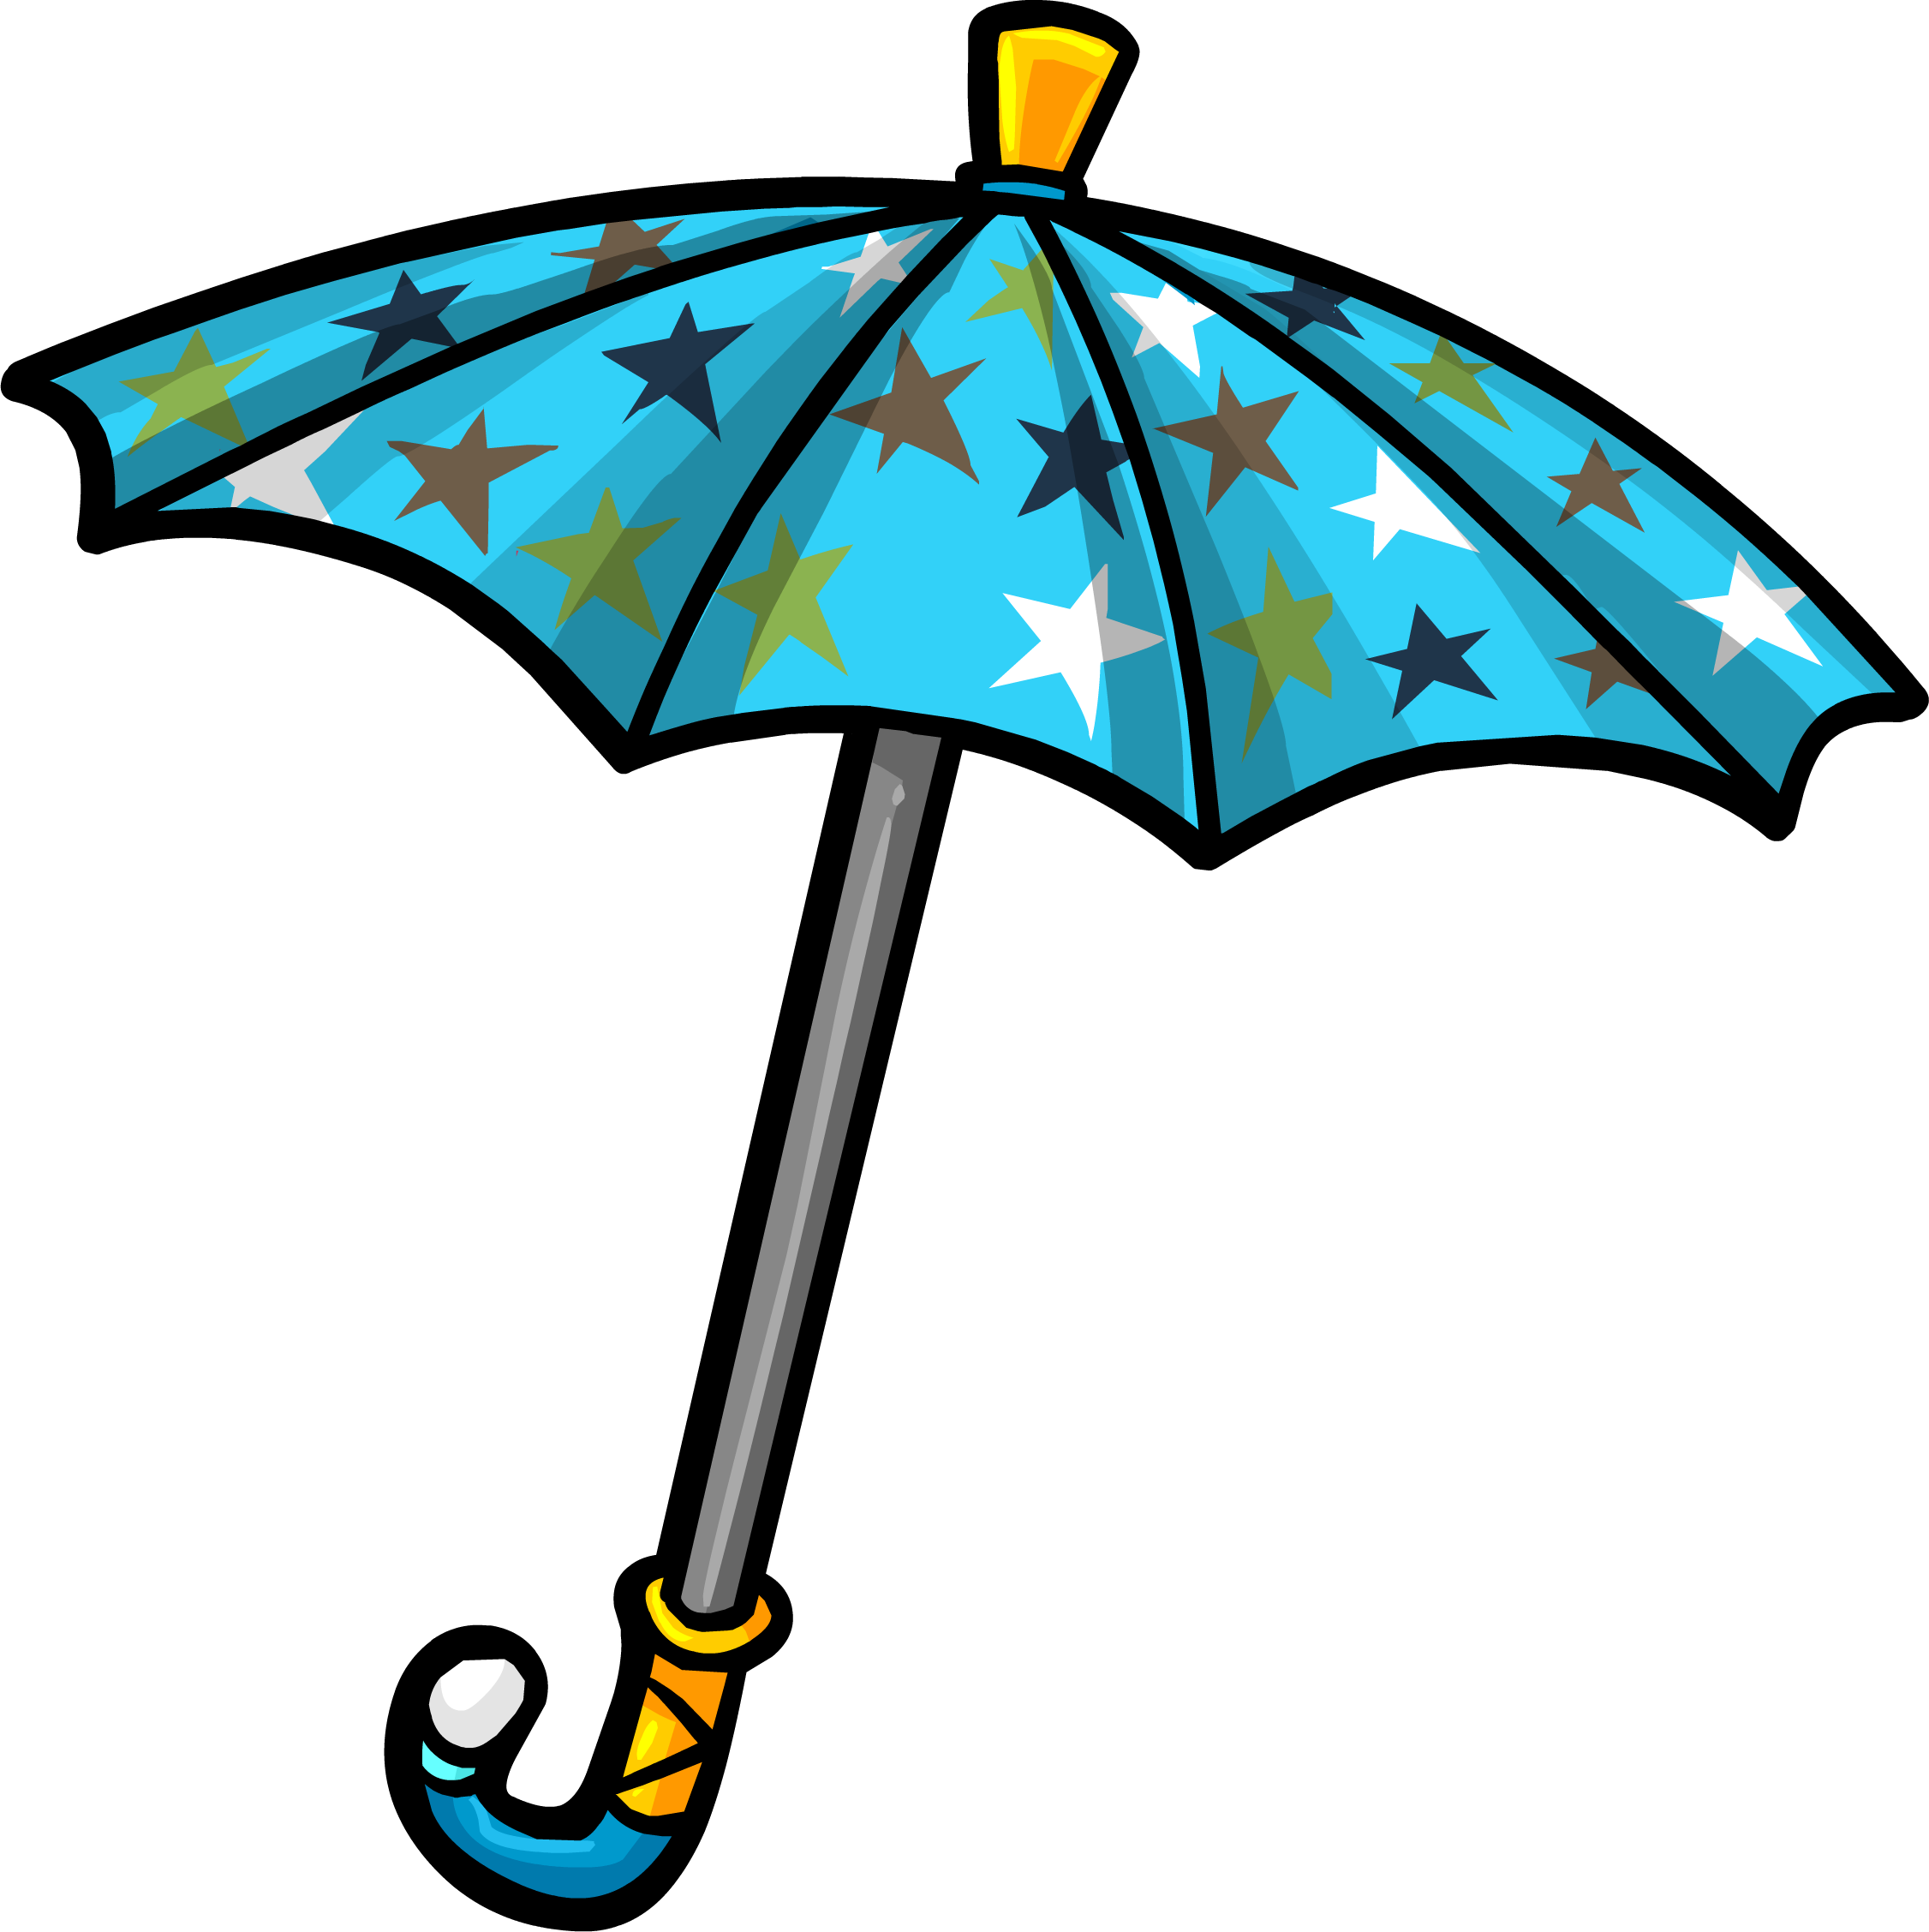 Cosmic Umbrella